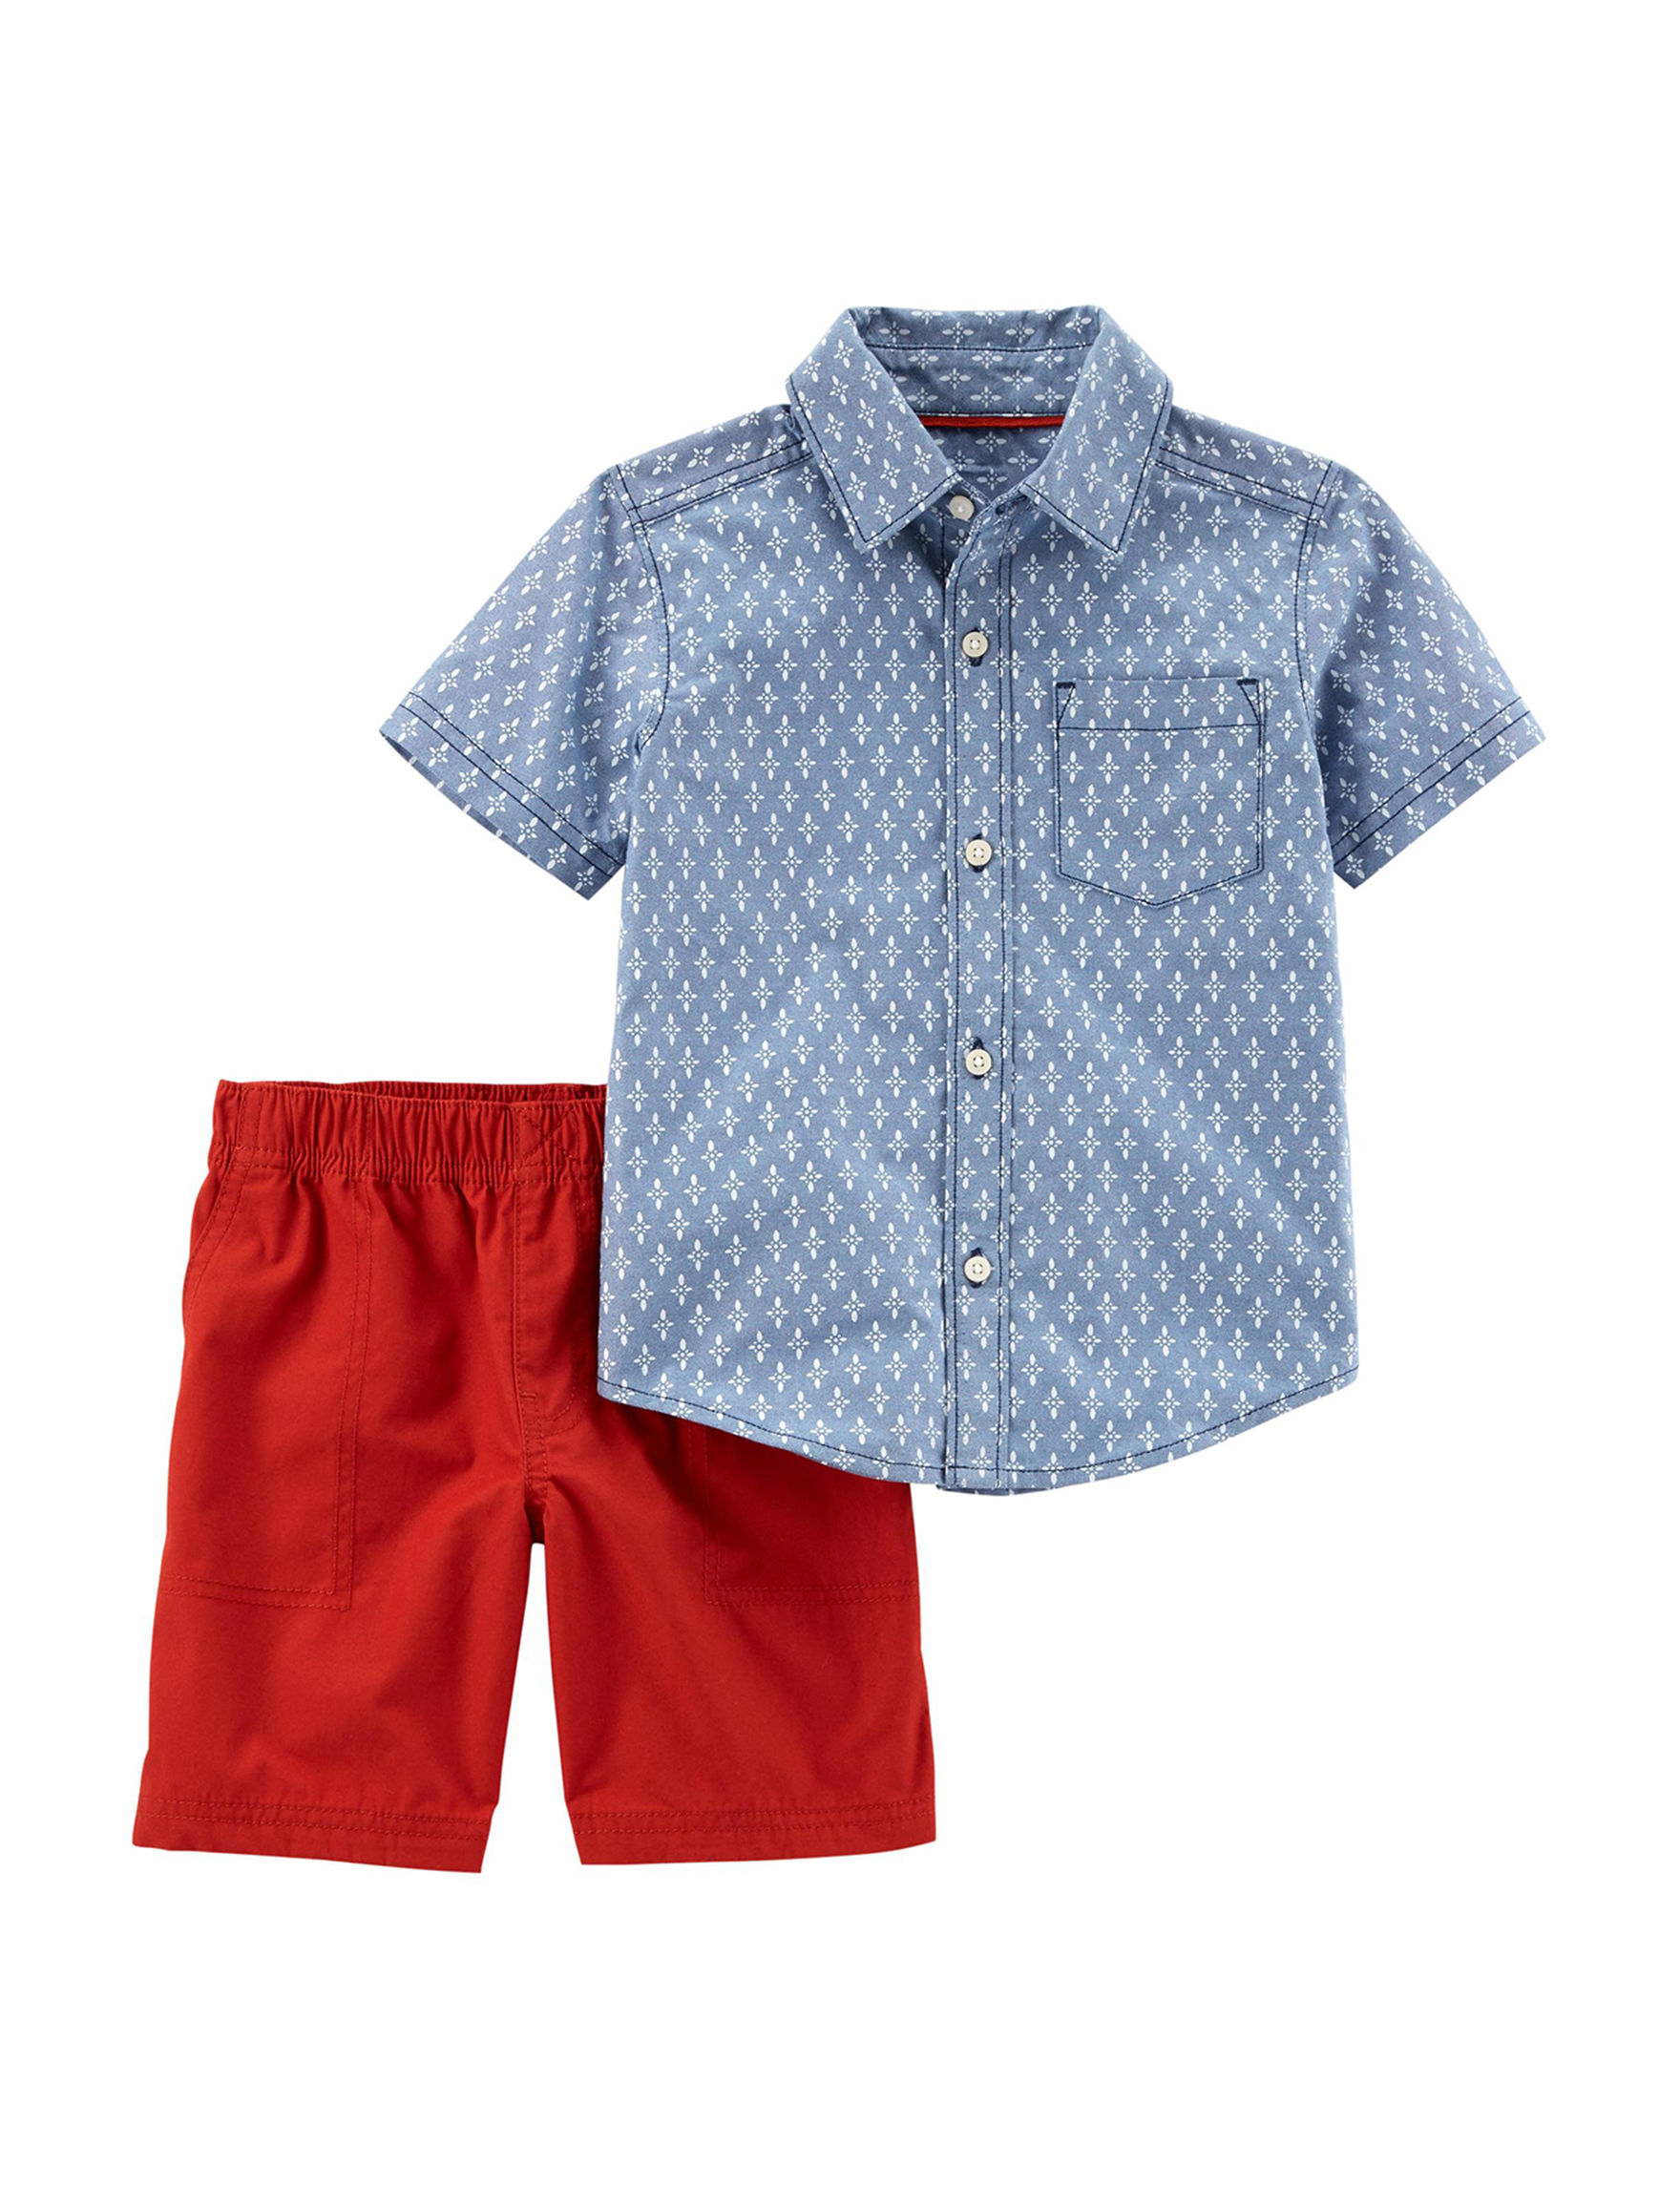 Carter's Blue / White / Red